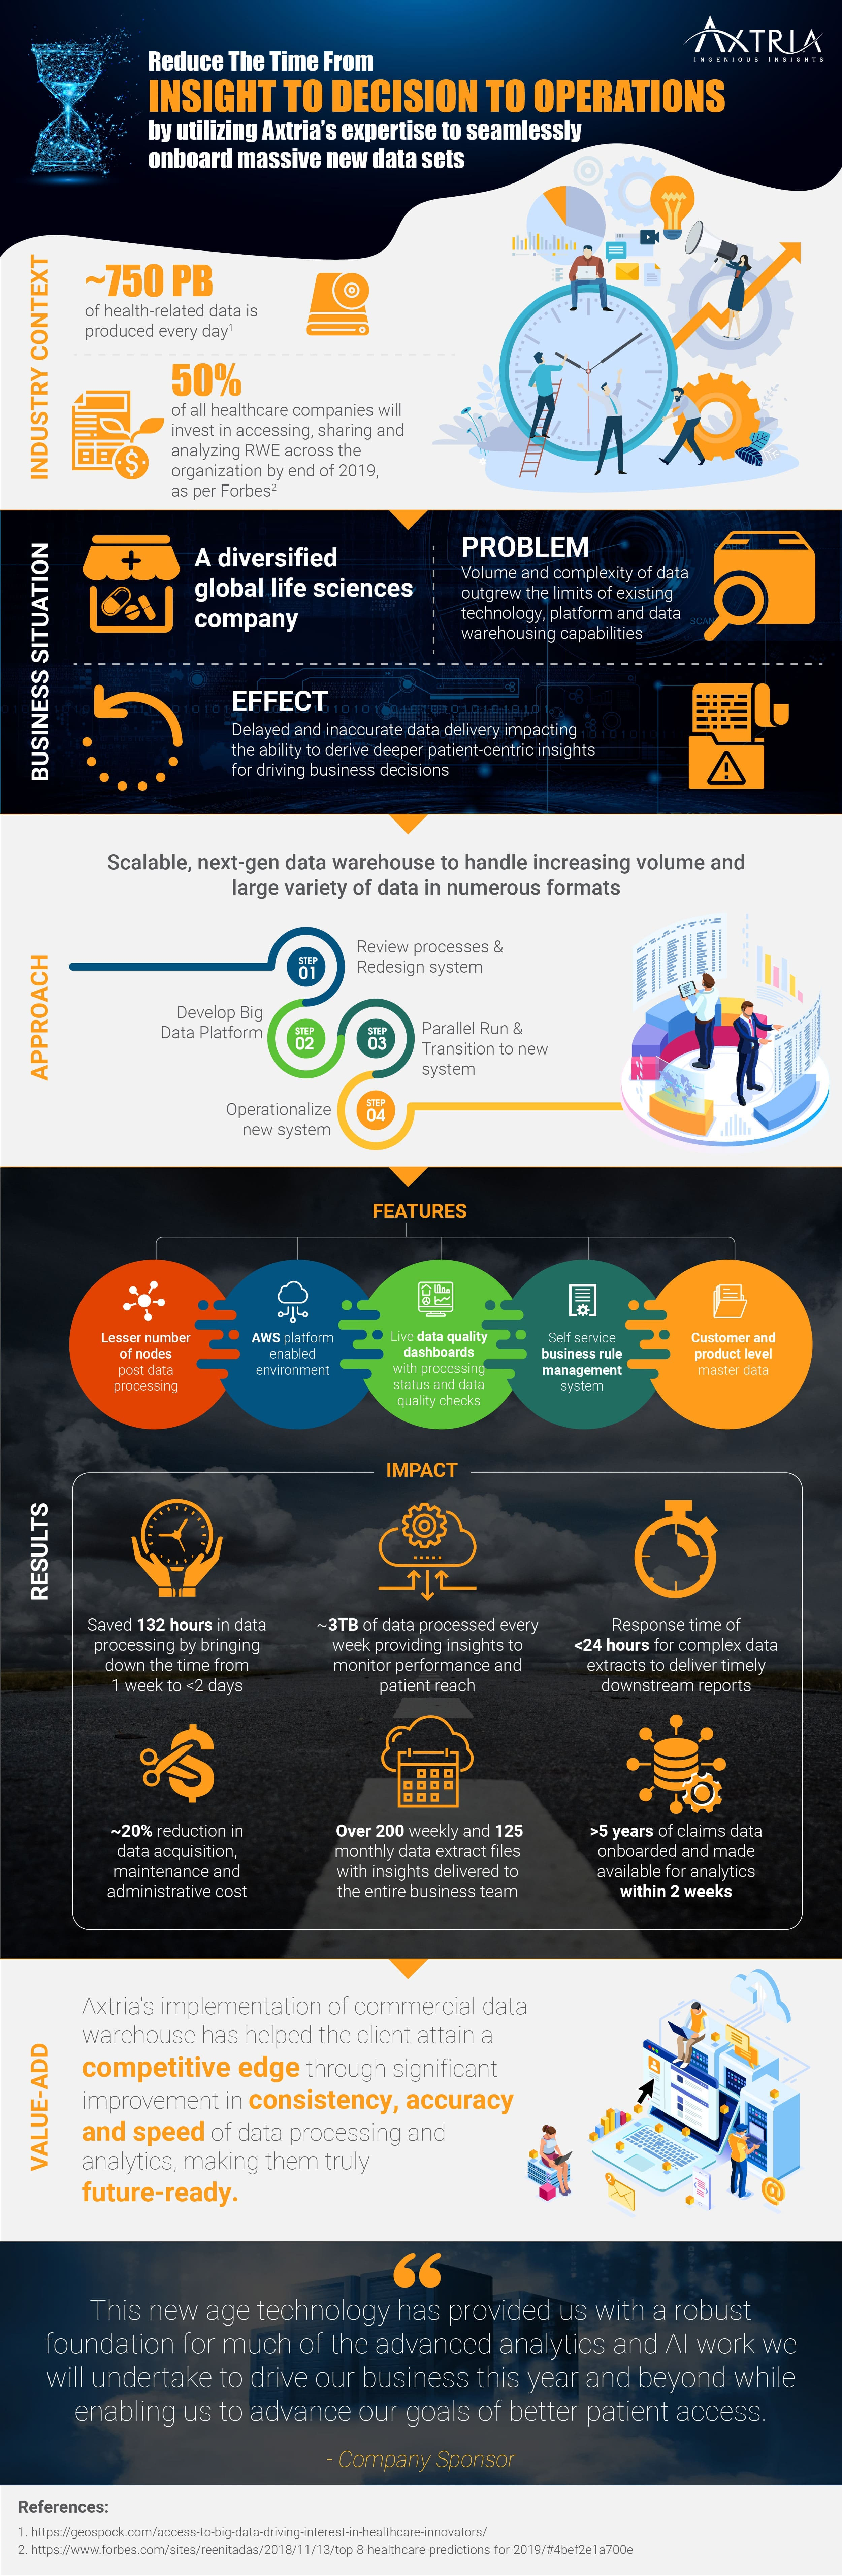 Axtria Infographic Commercial Data Management with Axtria DataMAx(TM)